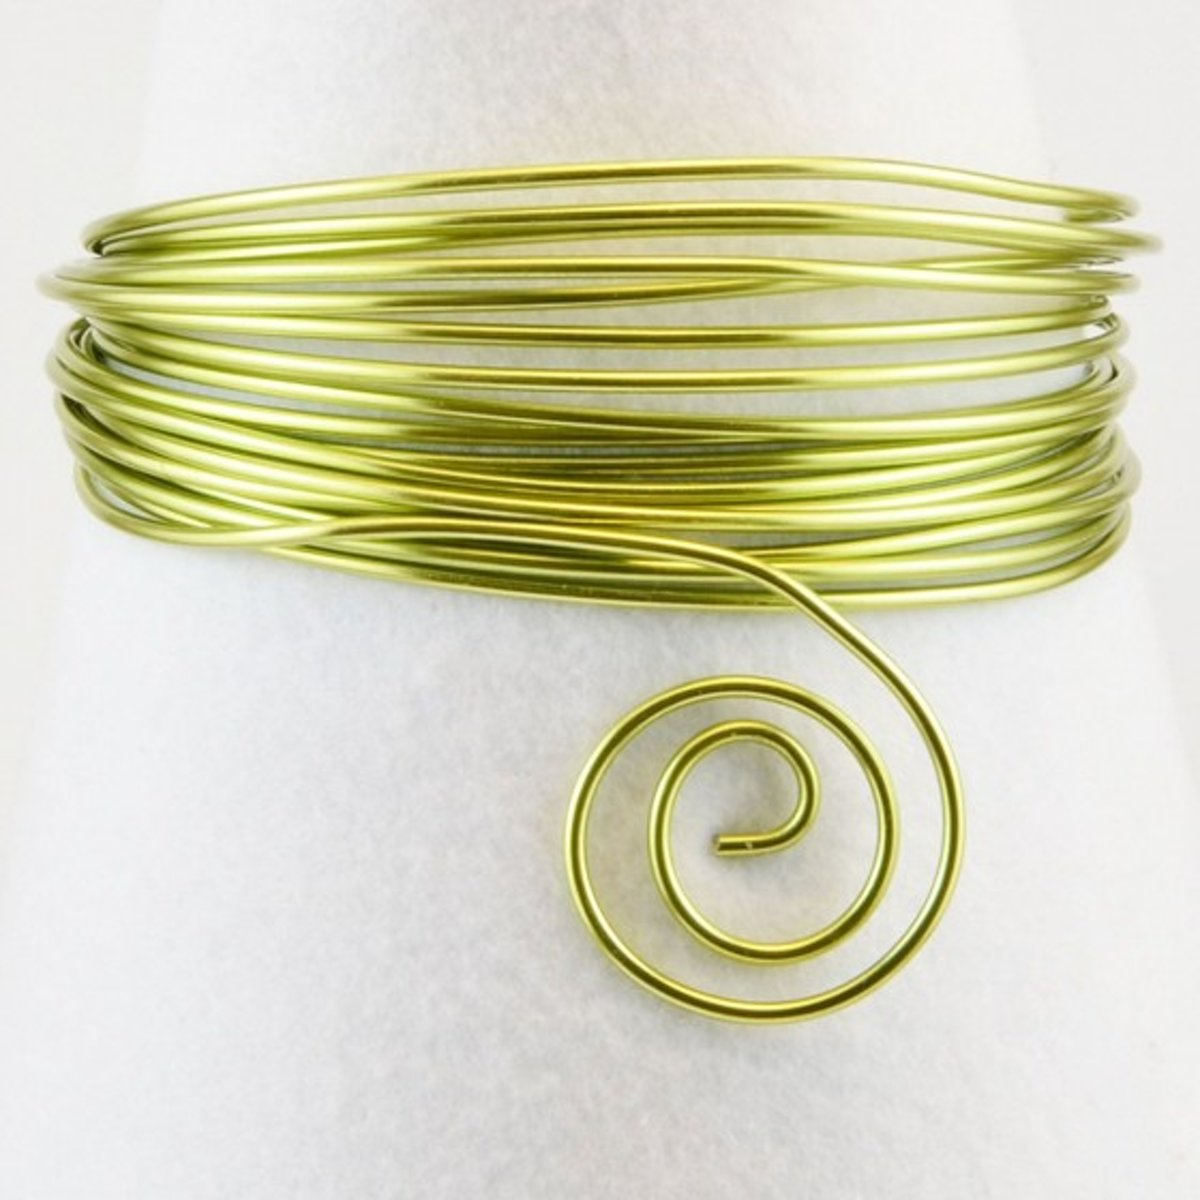 Aluminium draad - Aluminium wire 2mm 60m apple green - 1 stuk